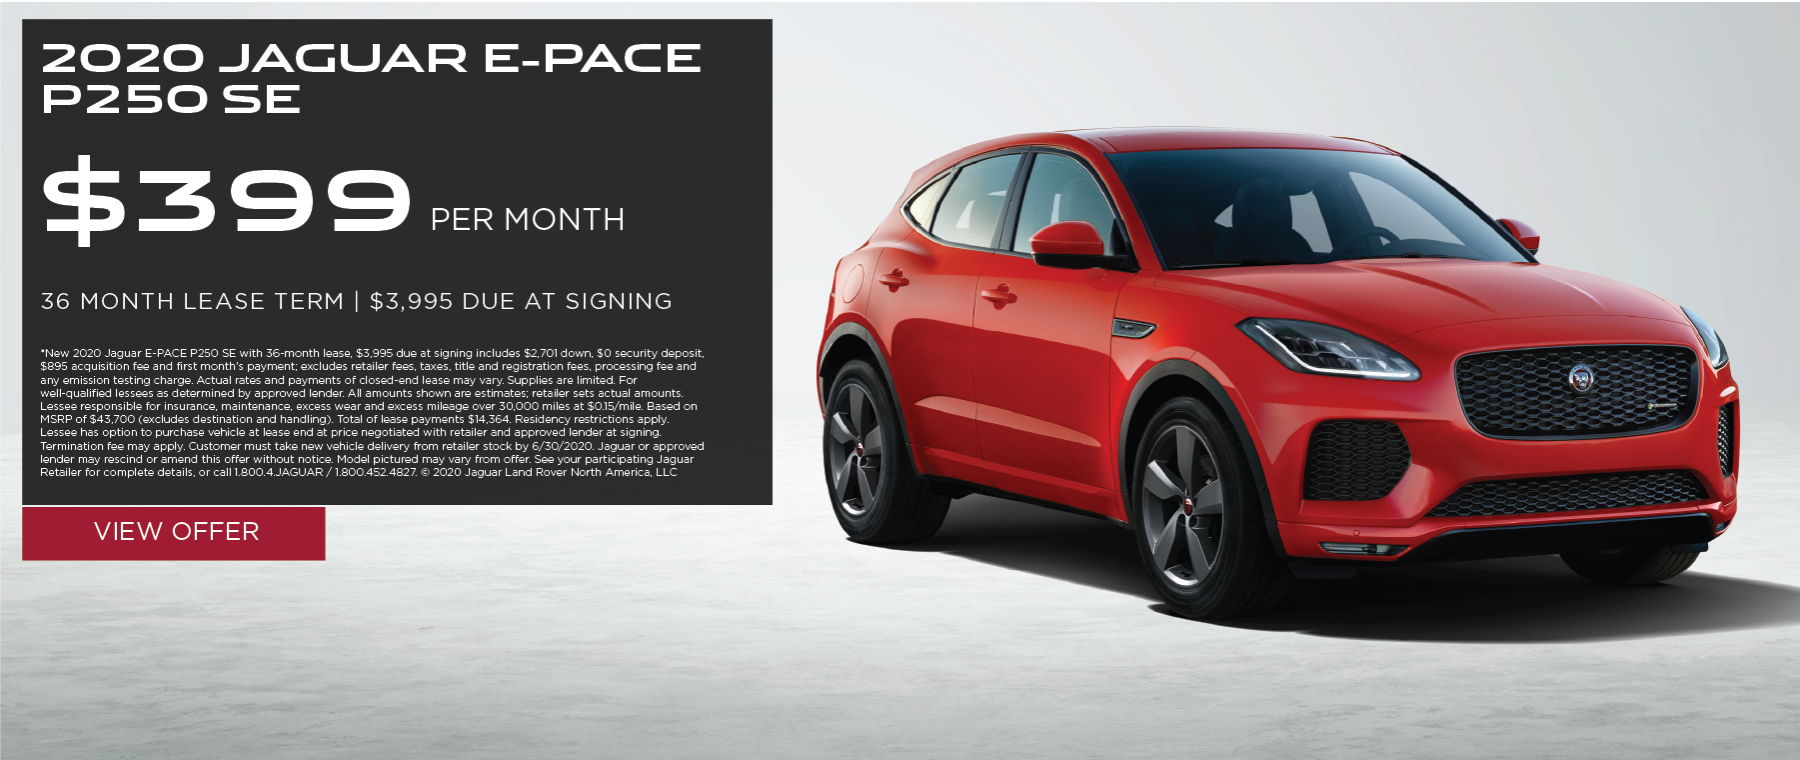 2020 JAGUAR E-PACE P250 SE. $399 PER MONTH. 36 MONTH LEASE TERM. $3,995 CASH DUE AT SIGNING. $0 SECURITY DEPOSIT. 10,000 MILES PER YEAR. EXCLUDES RETAILER FEES, TAXES, TITLE AND REGISTRATION FEES, PROCESSING FEE AND ANY EMISSION TESTING CHARGE. OFFER ENDS 6/30/2020.